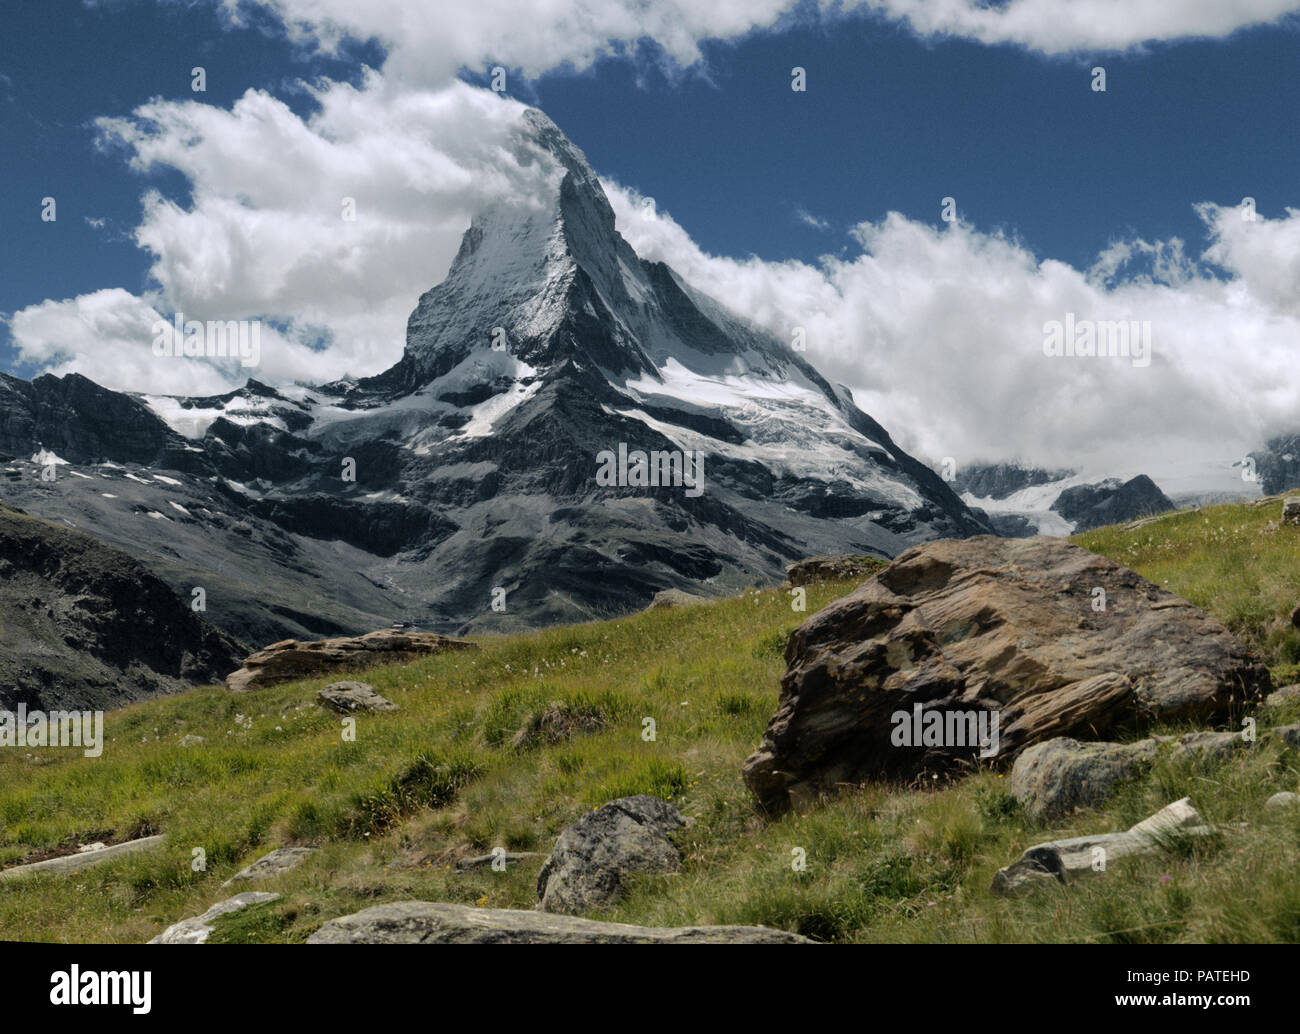 The iconic peak of the Matterhorn seen from Valais, showing banner cloud formation - Stock Image